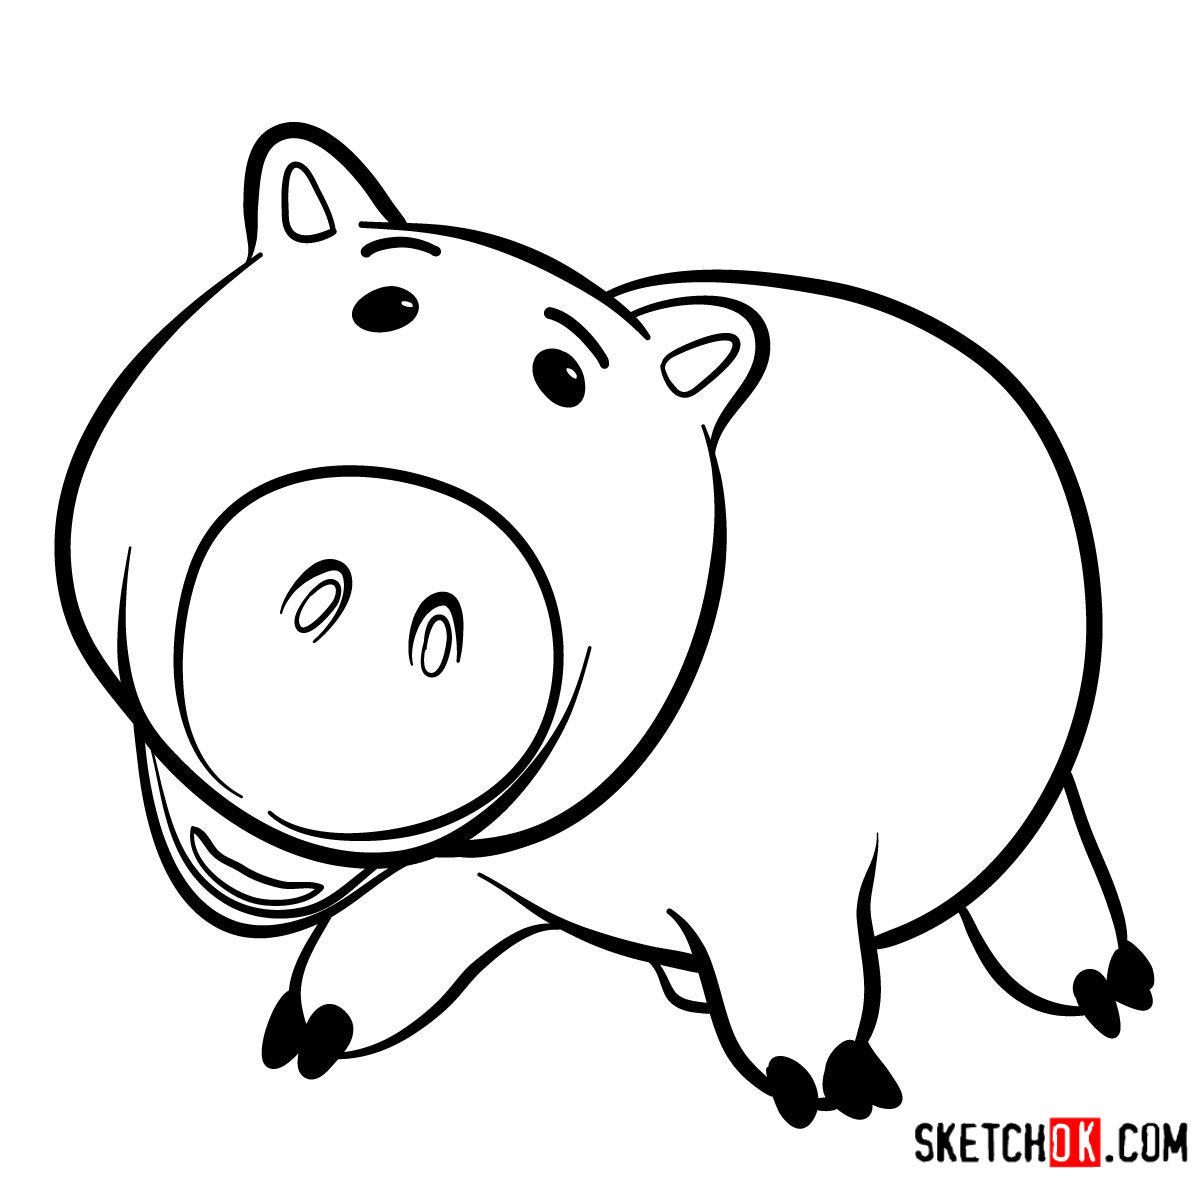 toy story hamm coloring page 1000 images about coloring pages on pinterest coloring toy page coloring story hamm